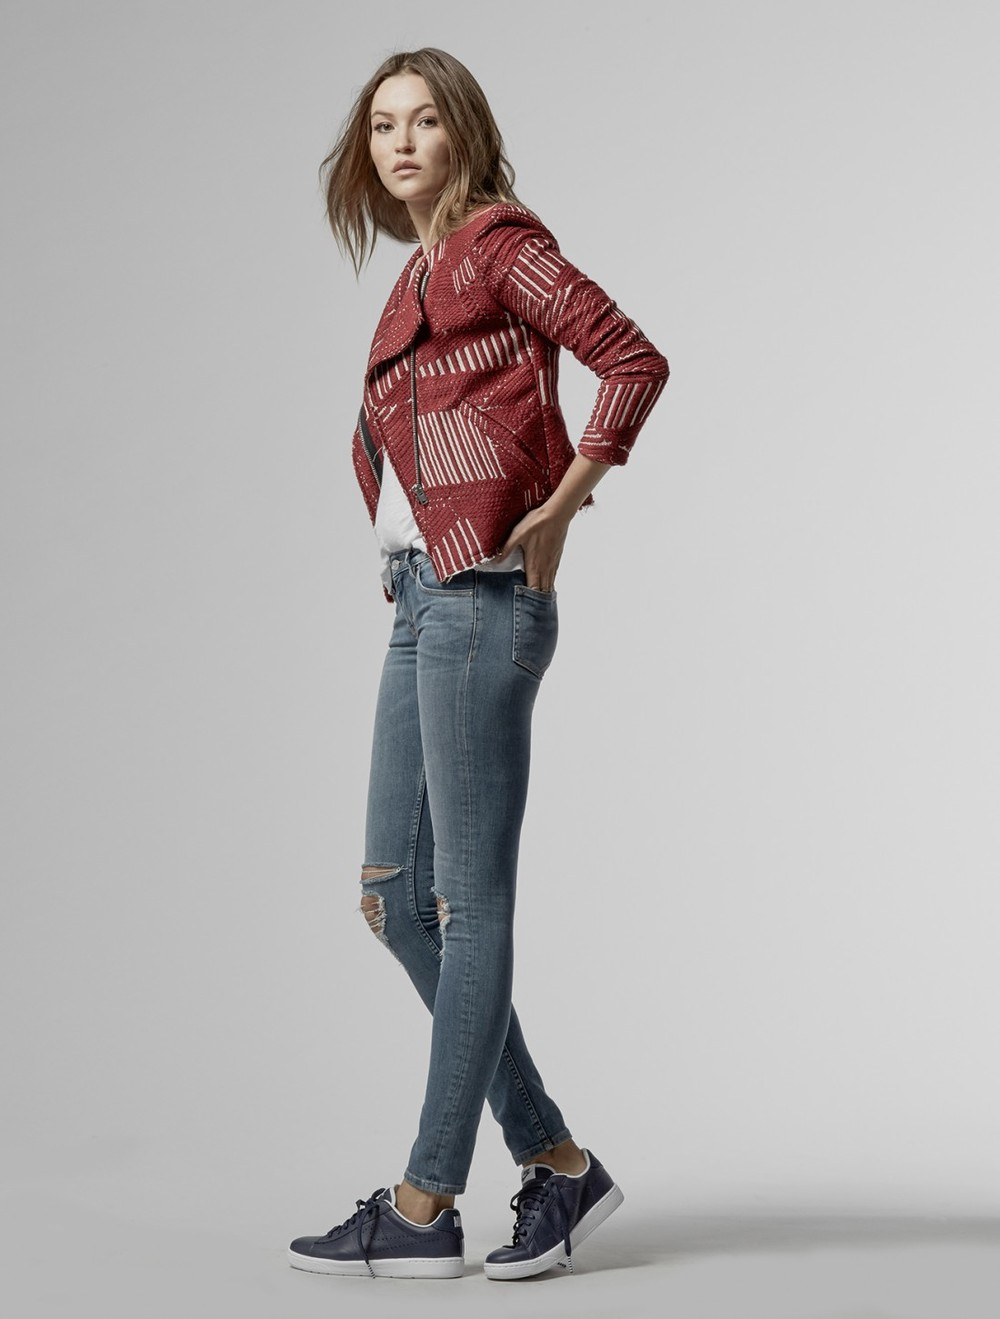 IRO jacket paired with skinny jeans